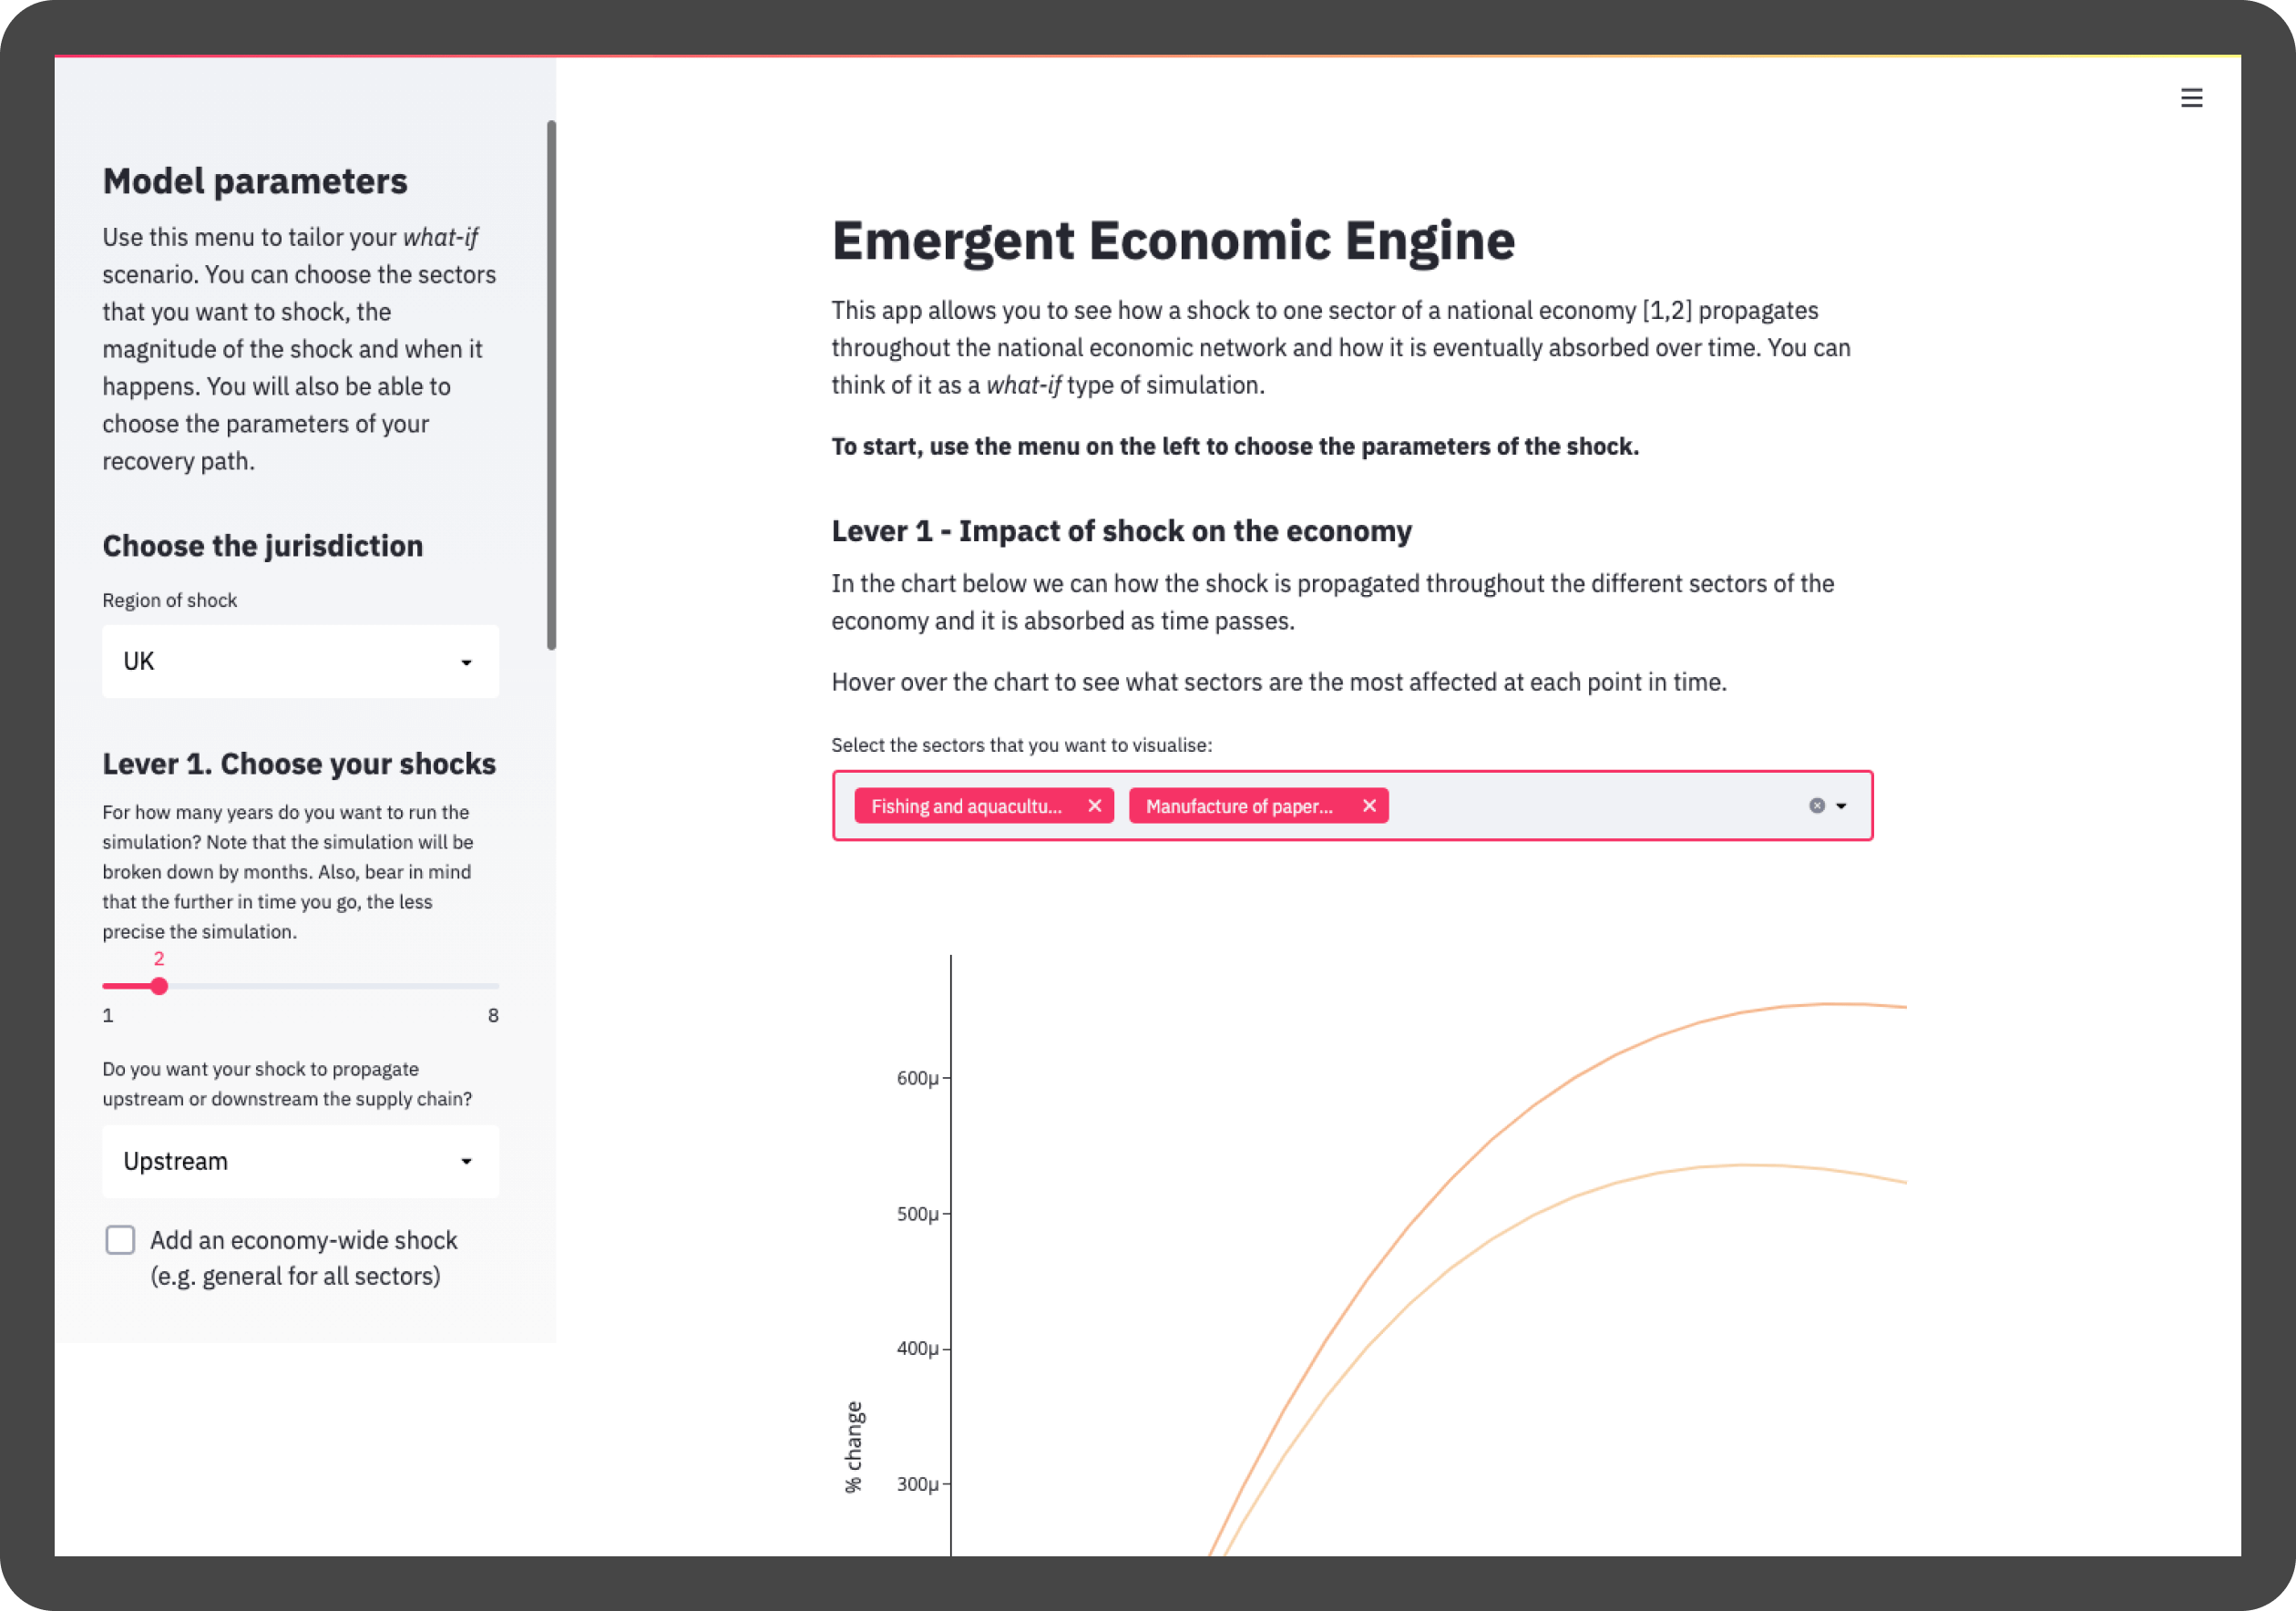 A preview of the Emergent Alliance's latest tool - the Economic Engine